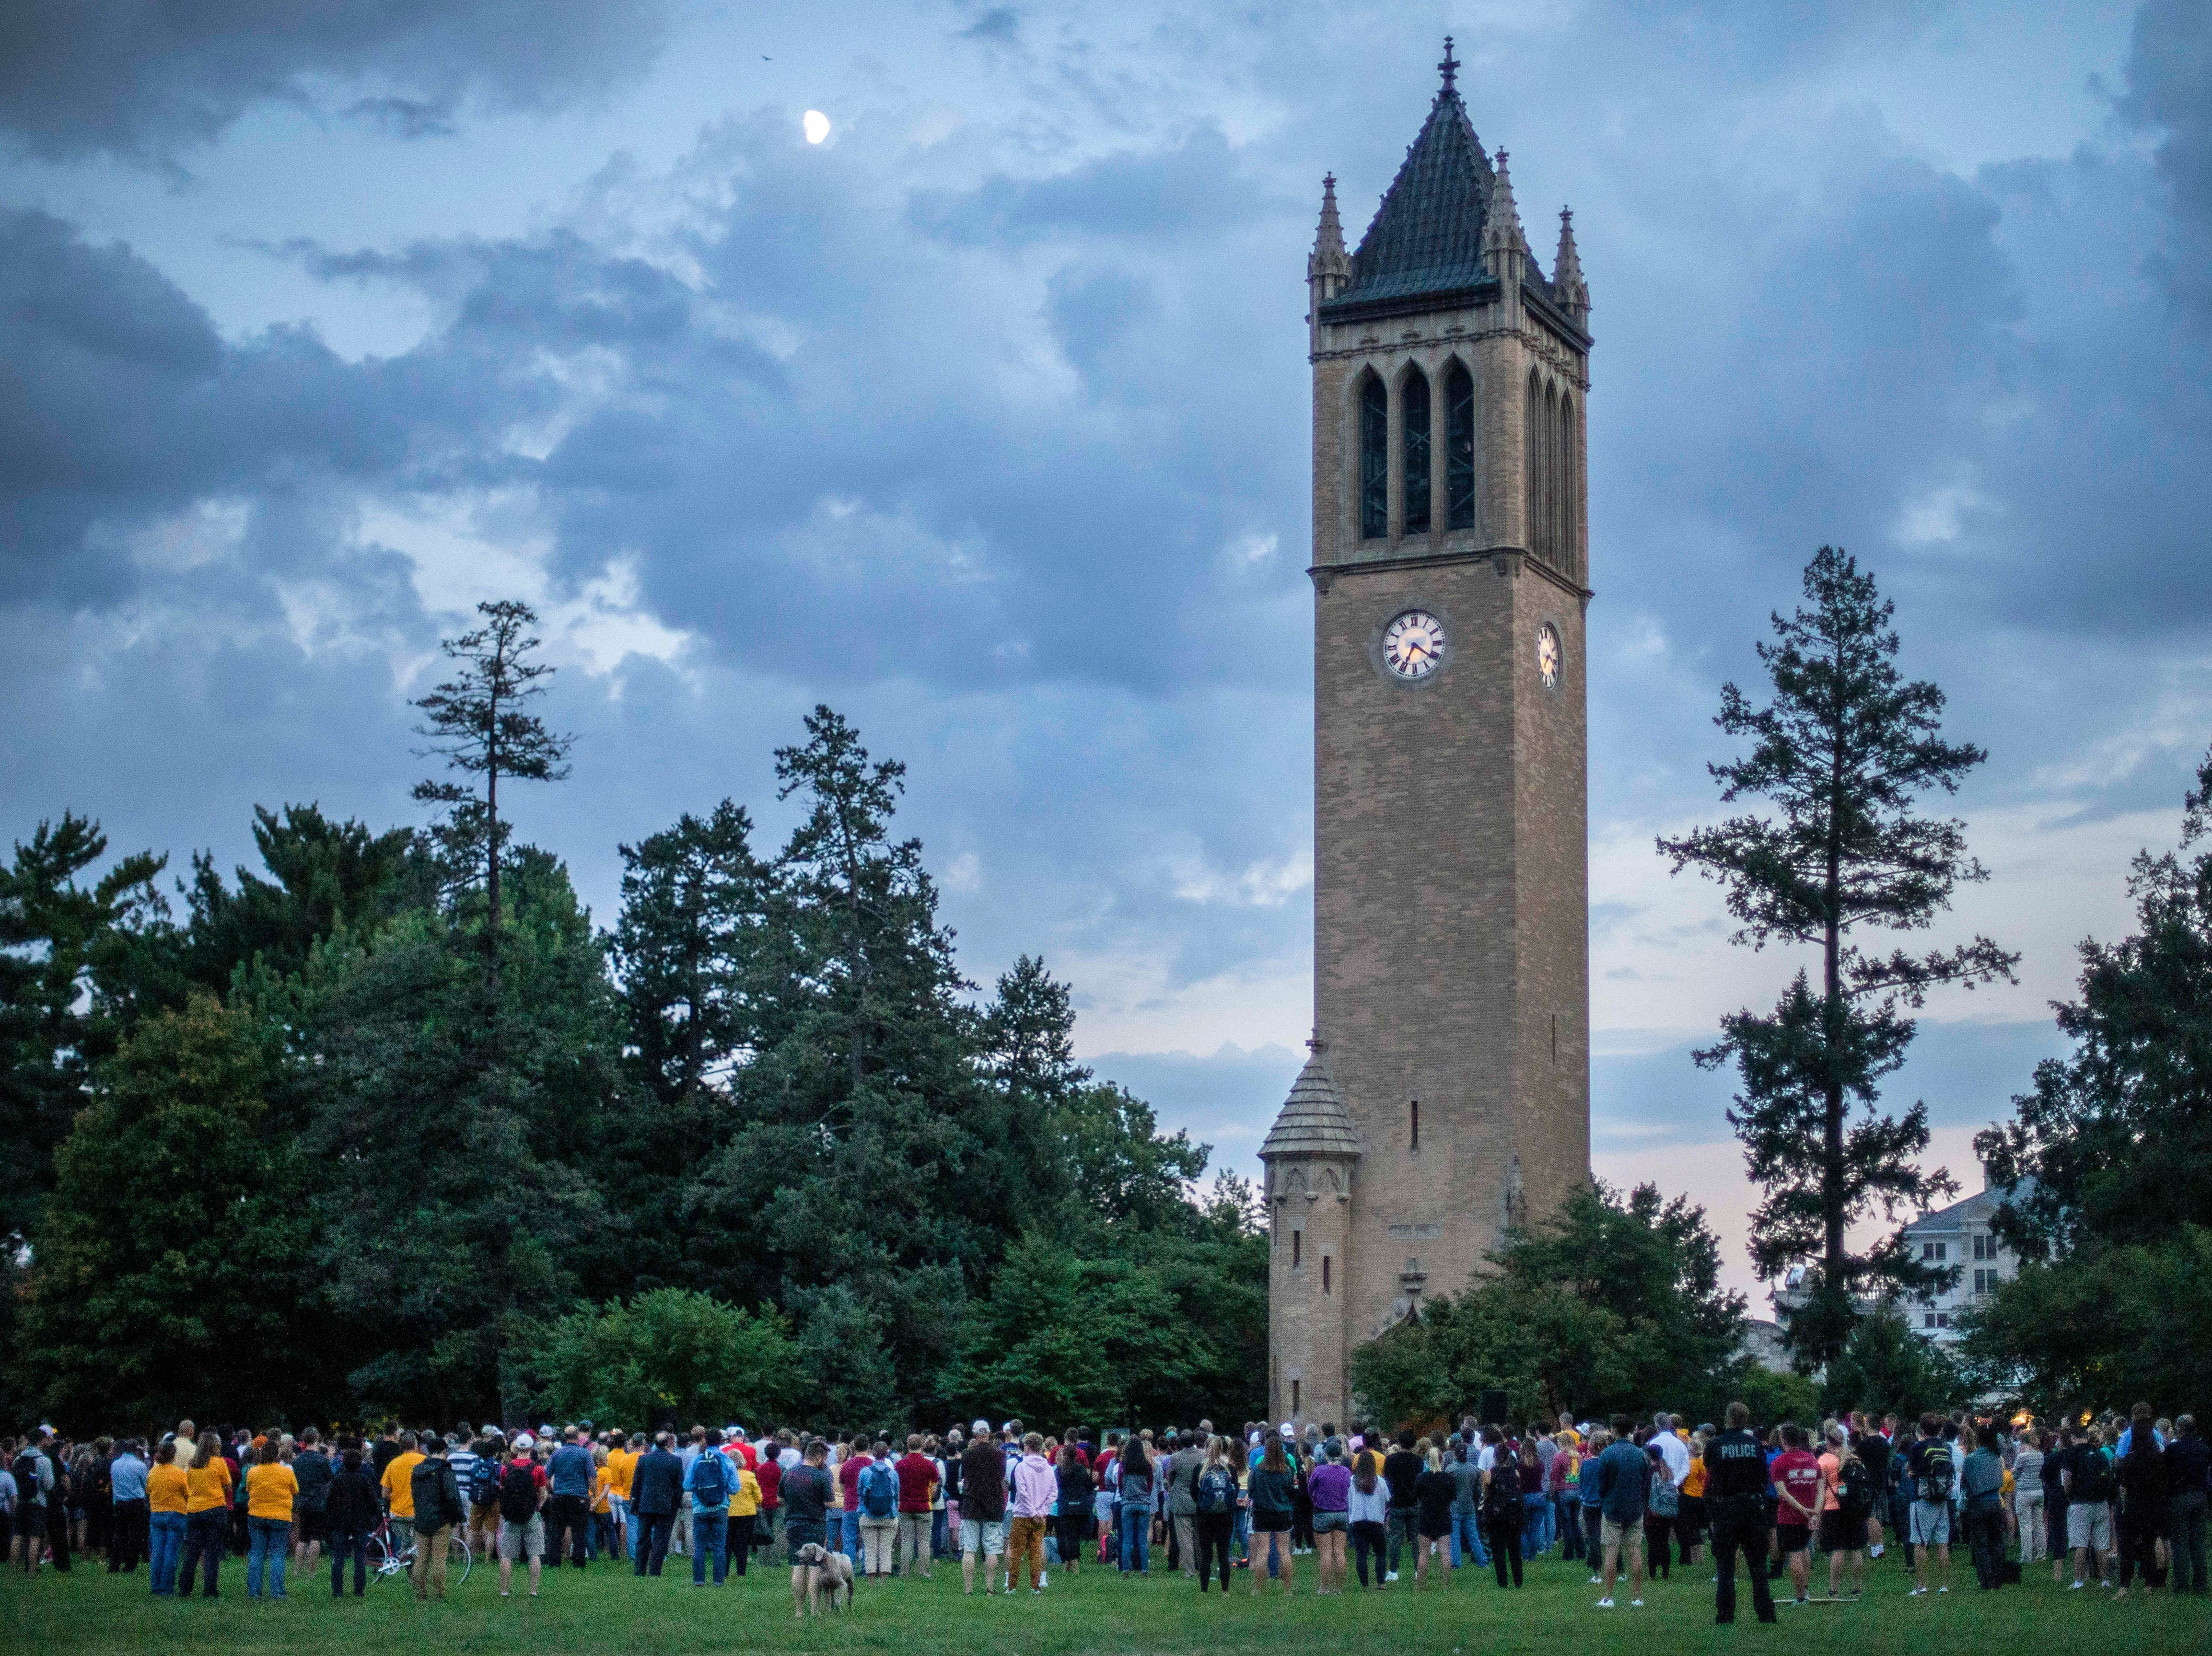 Iowa State students and friends of Celia Barquin Arozamena gathered in the hundreds to mourn their fellow student during a vigil on Wednesday, Sept. 19, 2018, in Ames.